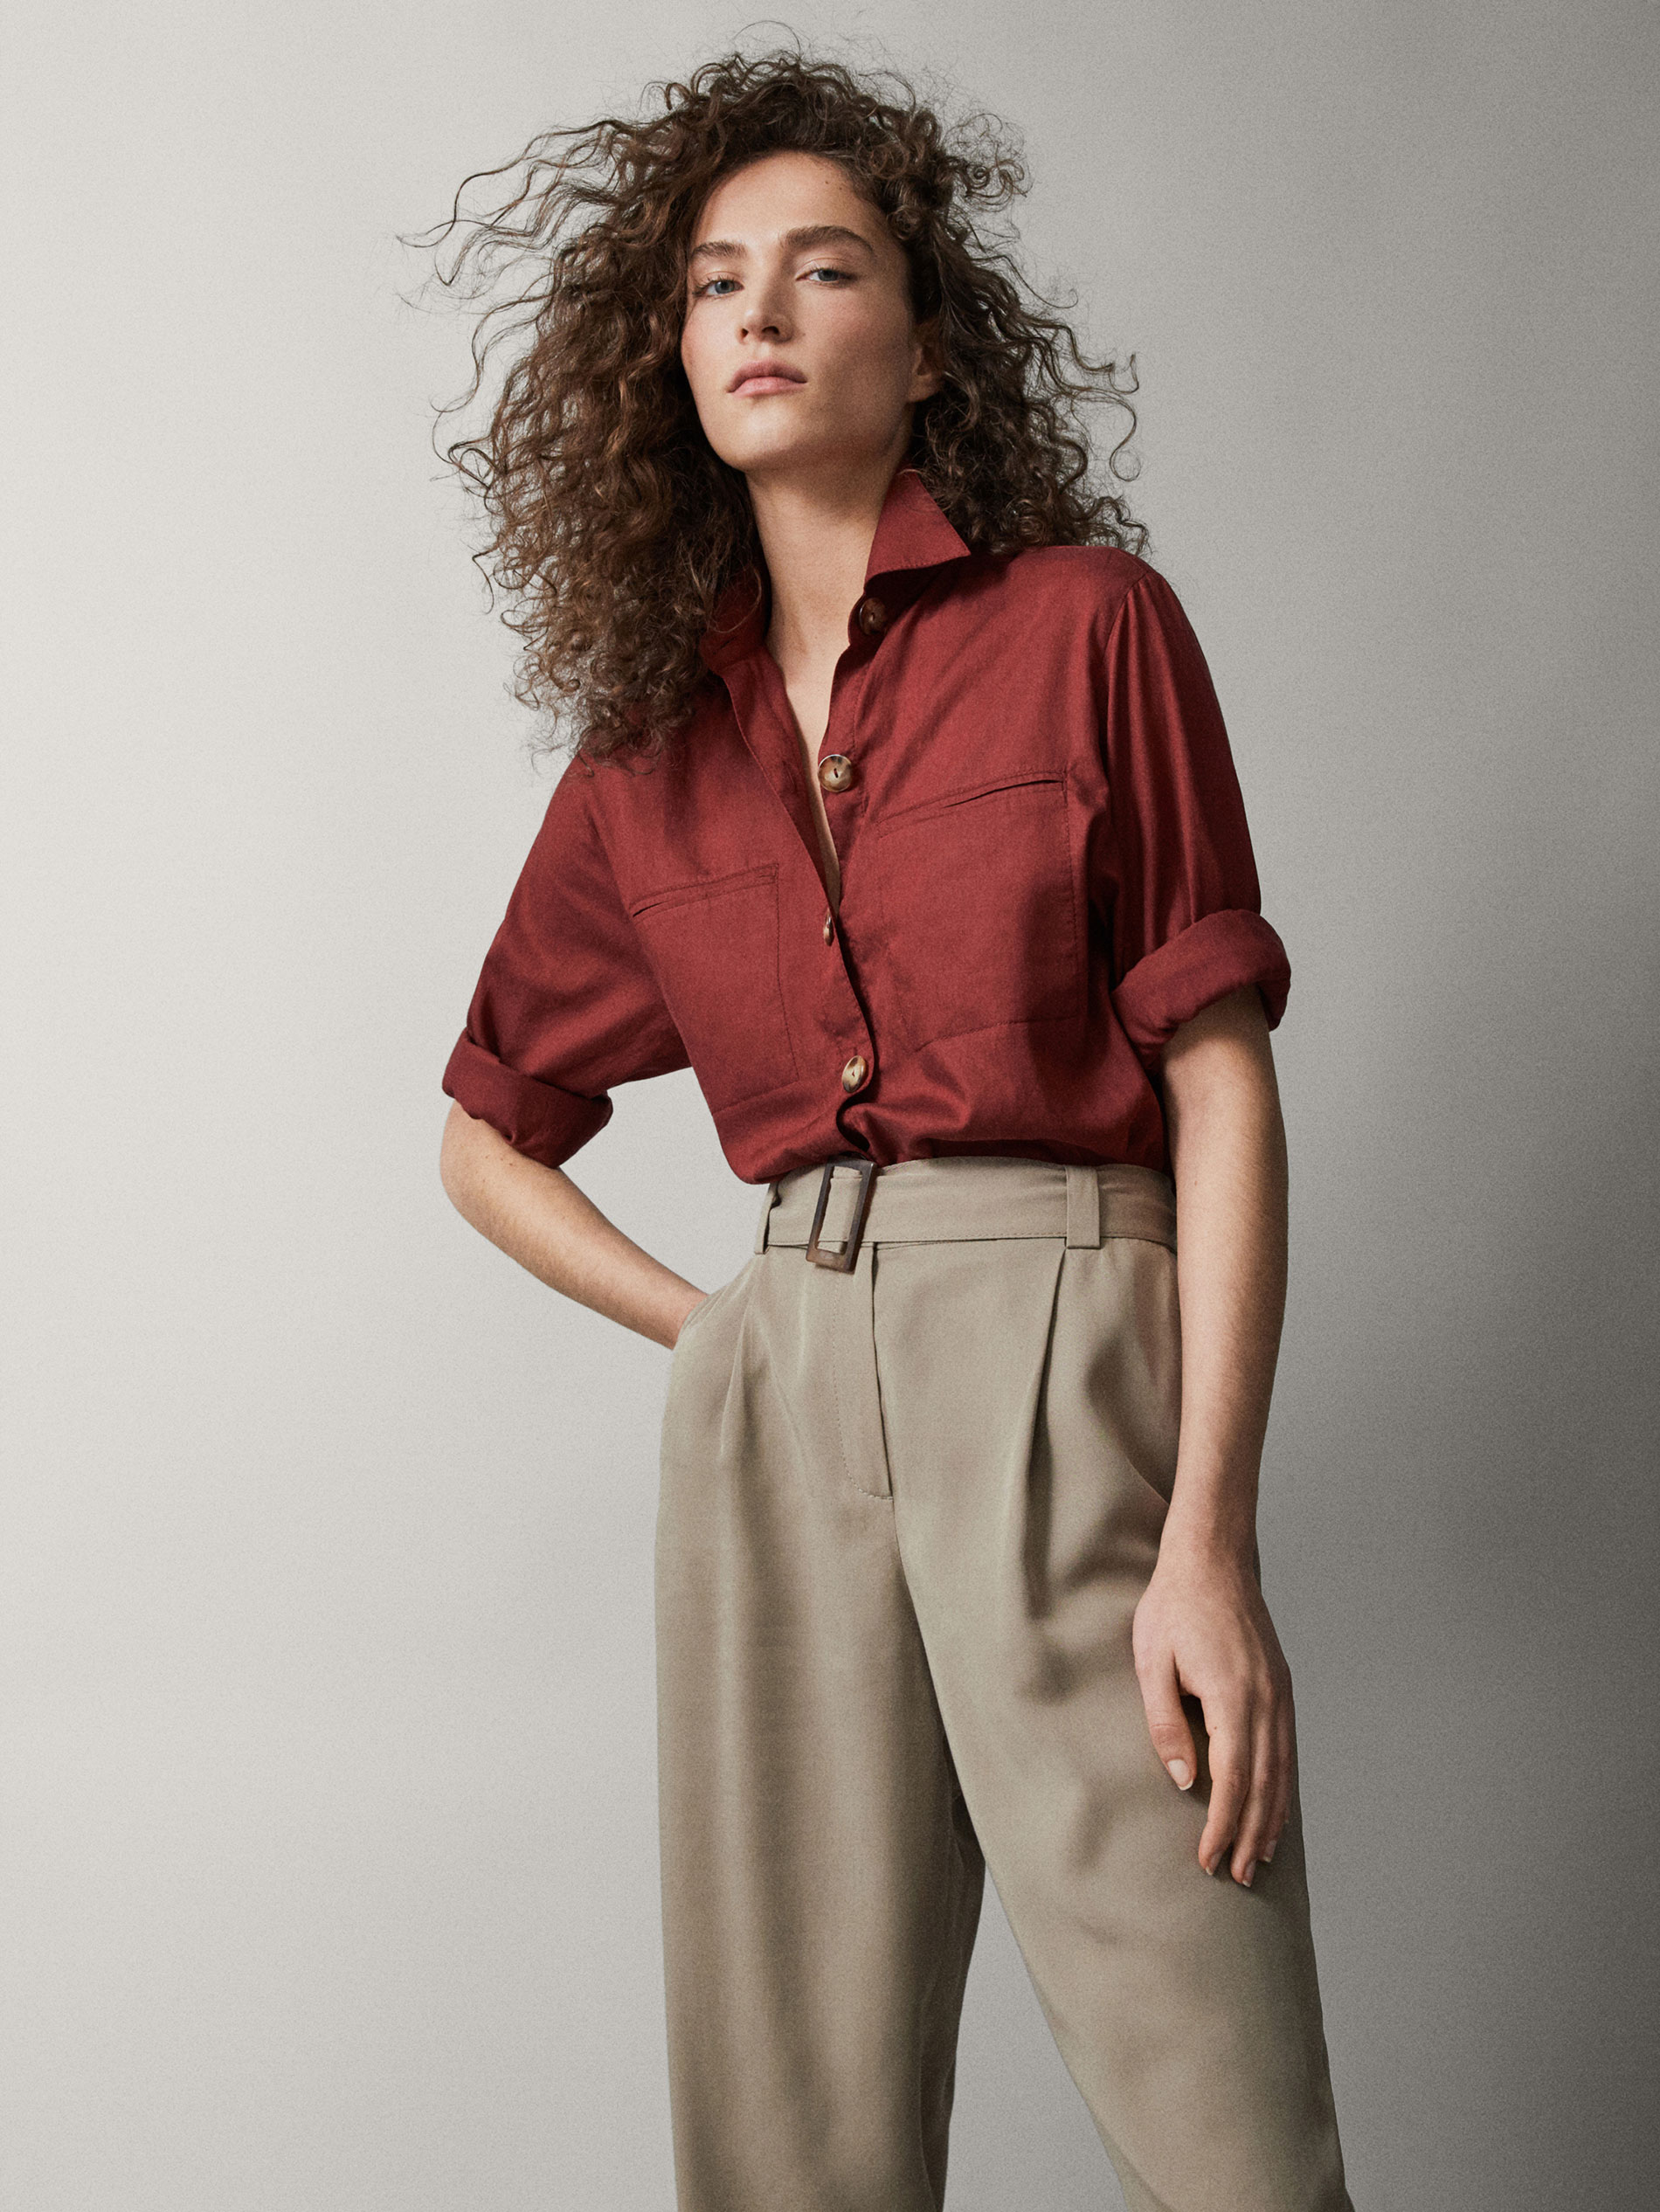 COTTON/LYOCELL SHIRT WITH POCKETS - Women - Massimo Dutti